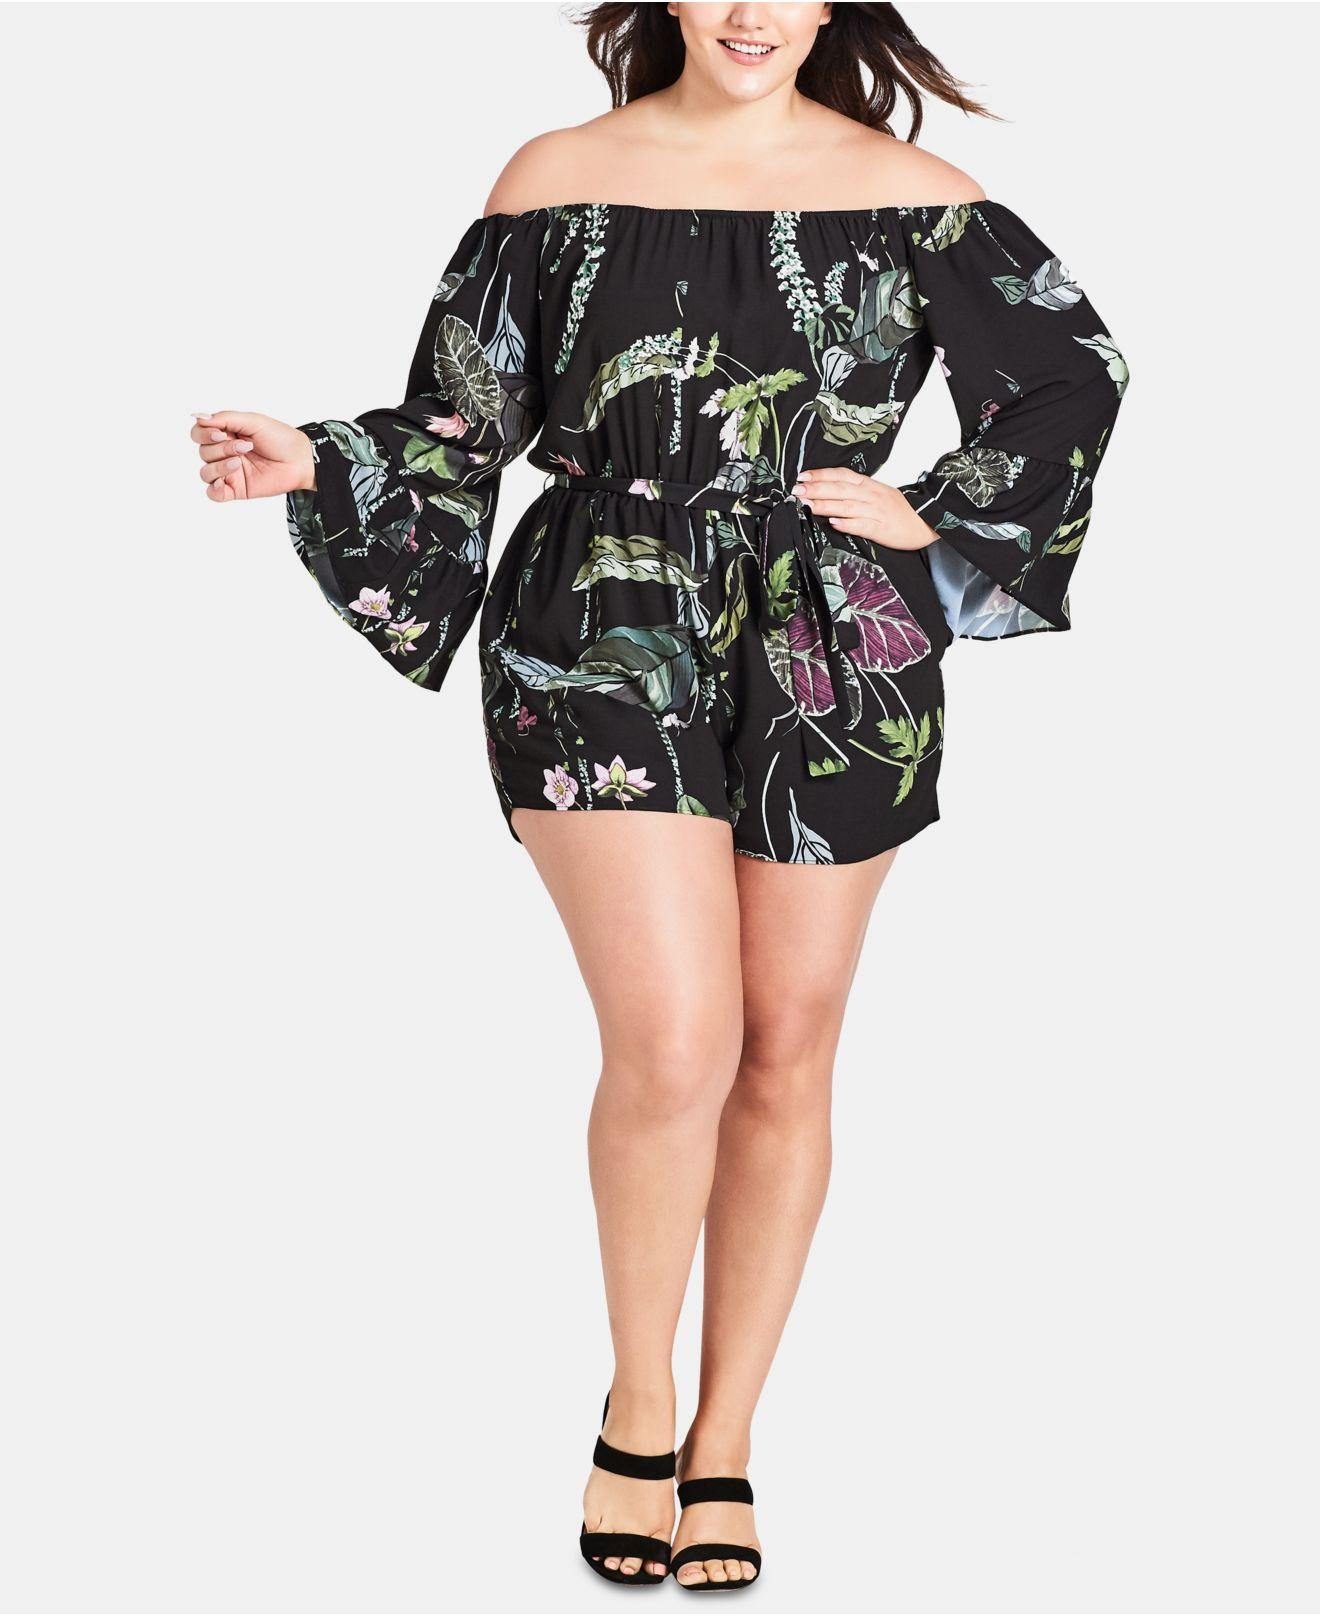 49513dd57d Lyst - City Chic Trendy Plus Size Lily Pad Romper in Black